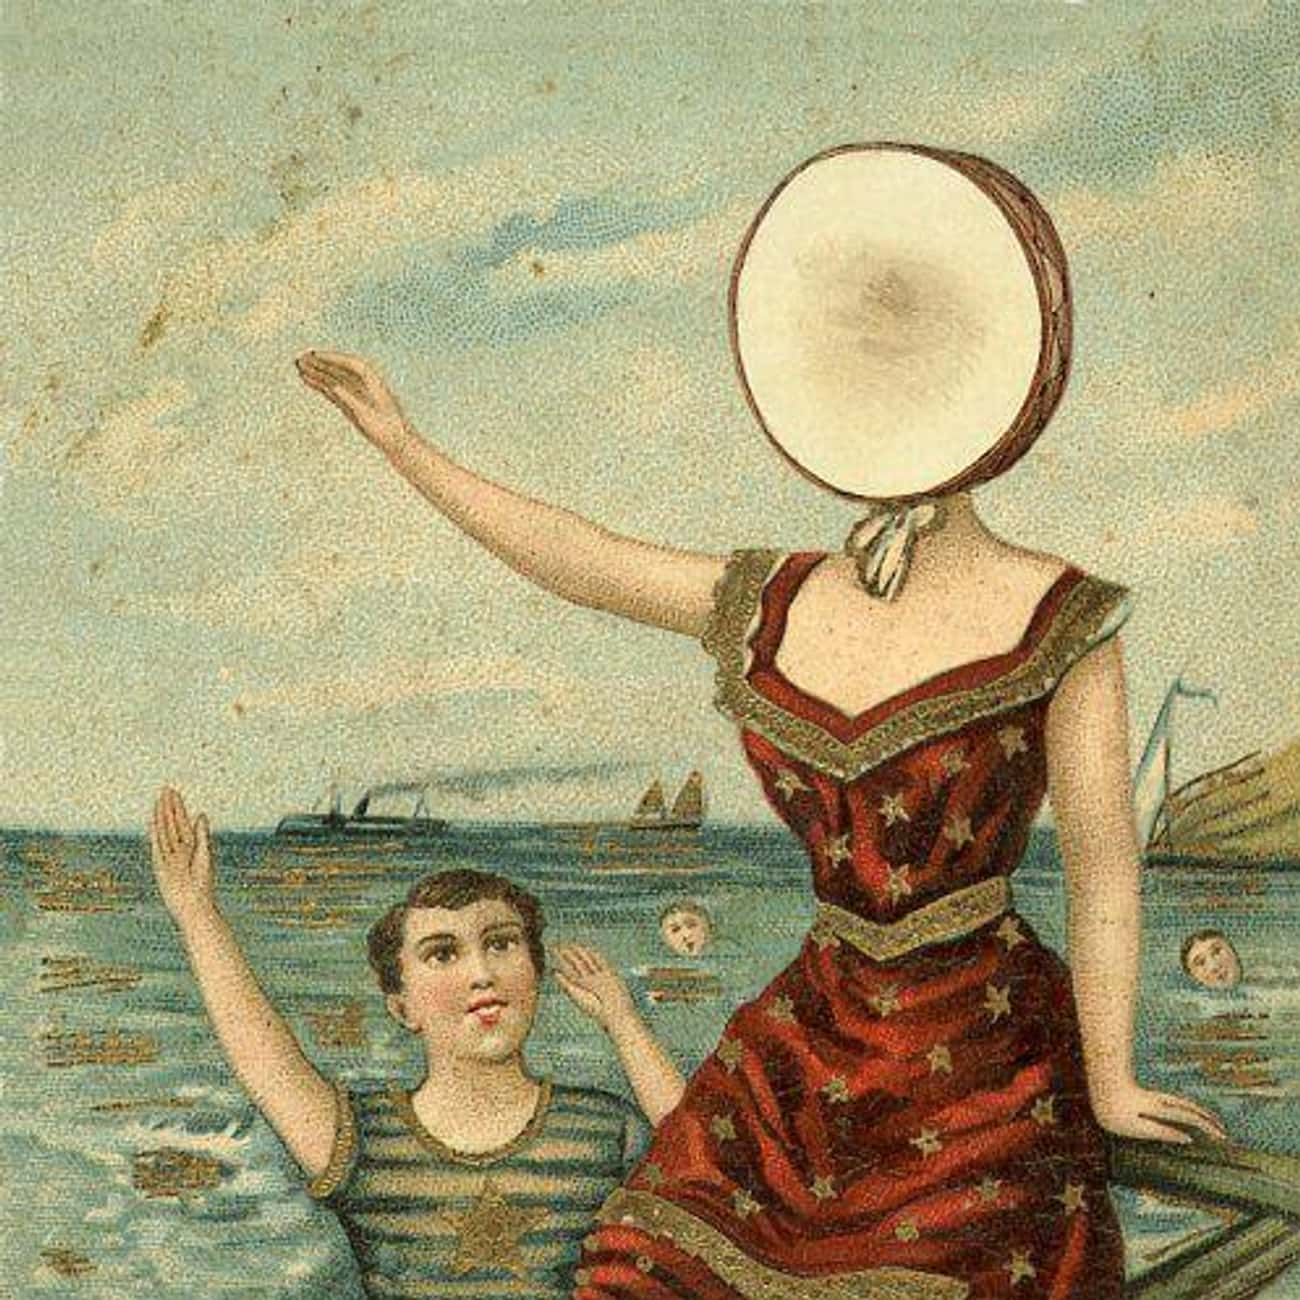 Neutral Milk Hotel 'In The is listed (or ranked) 2 on the list The 12 Strangest Albums With Rabid Cult Followings